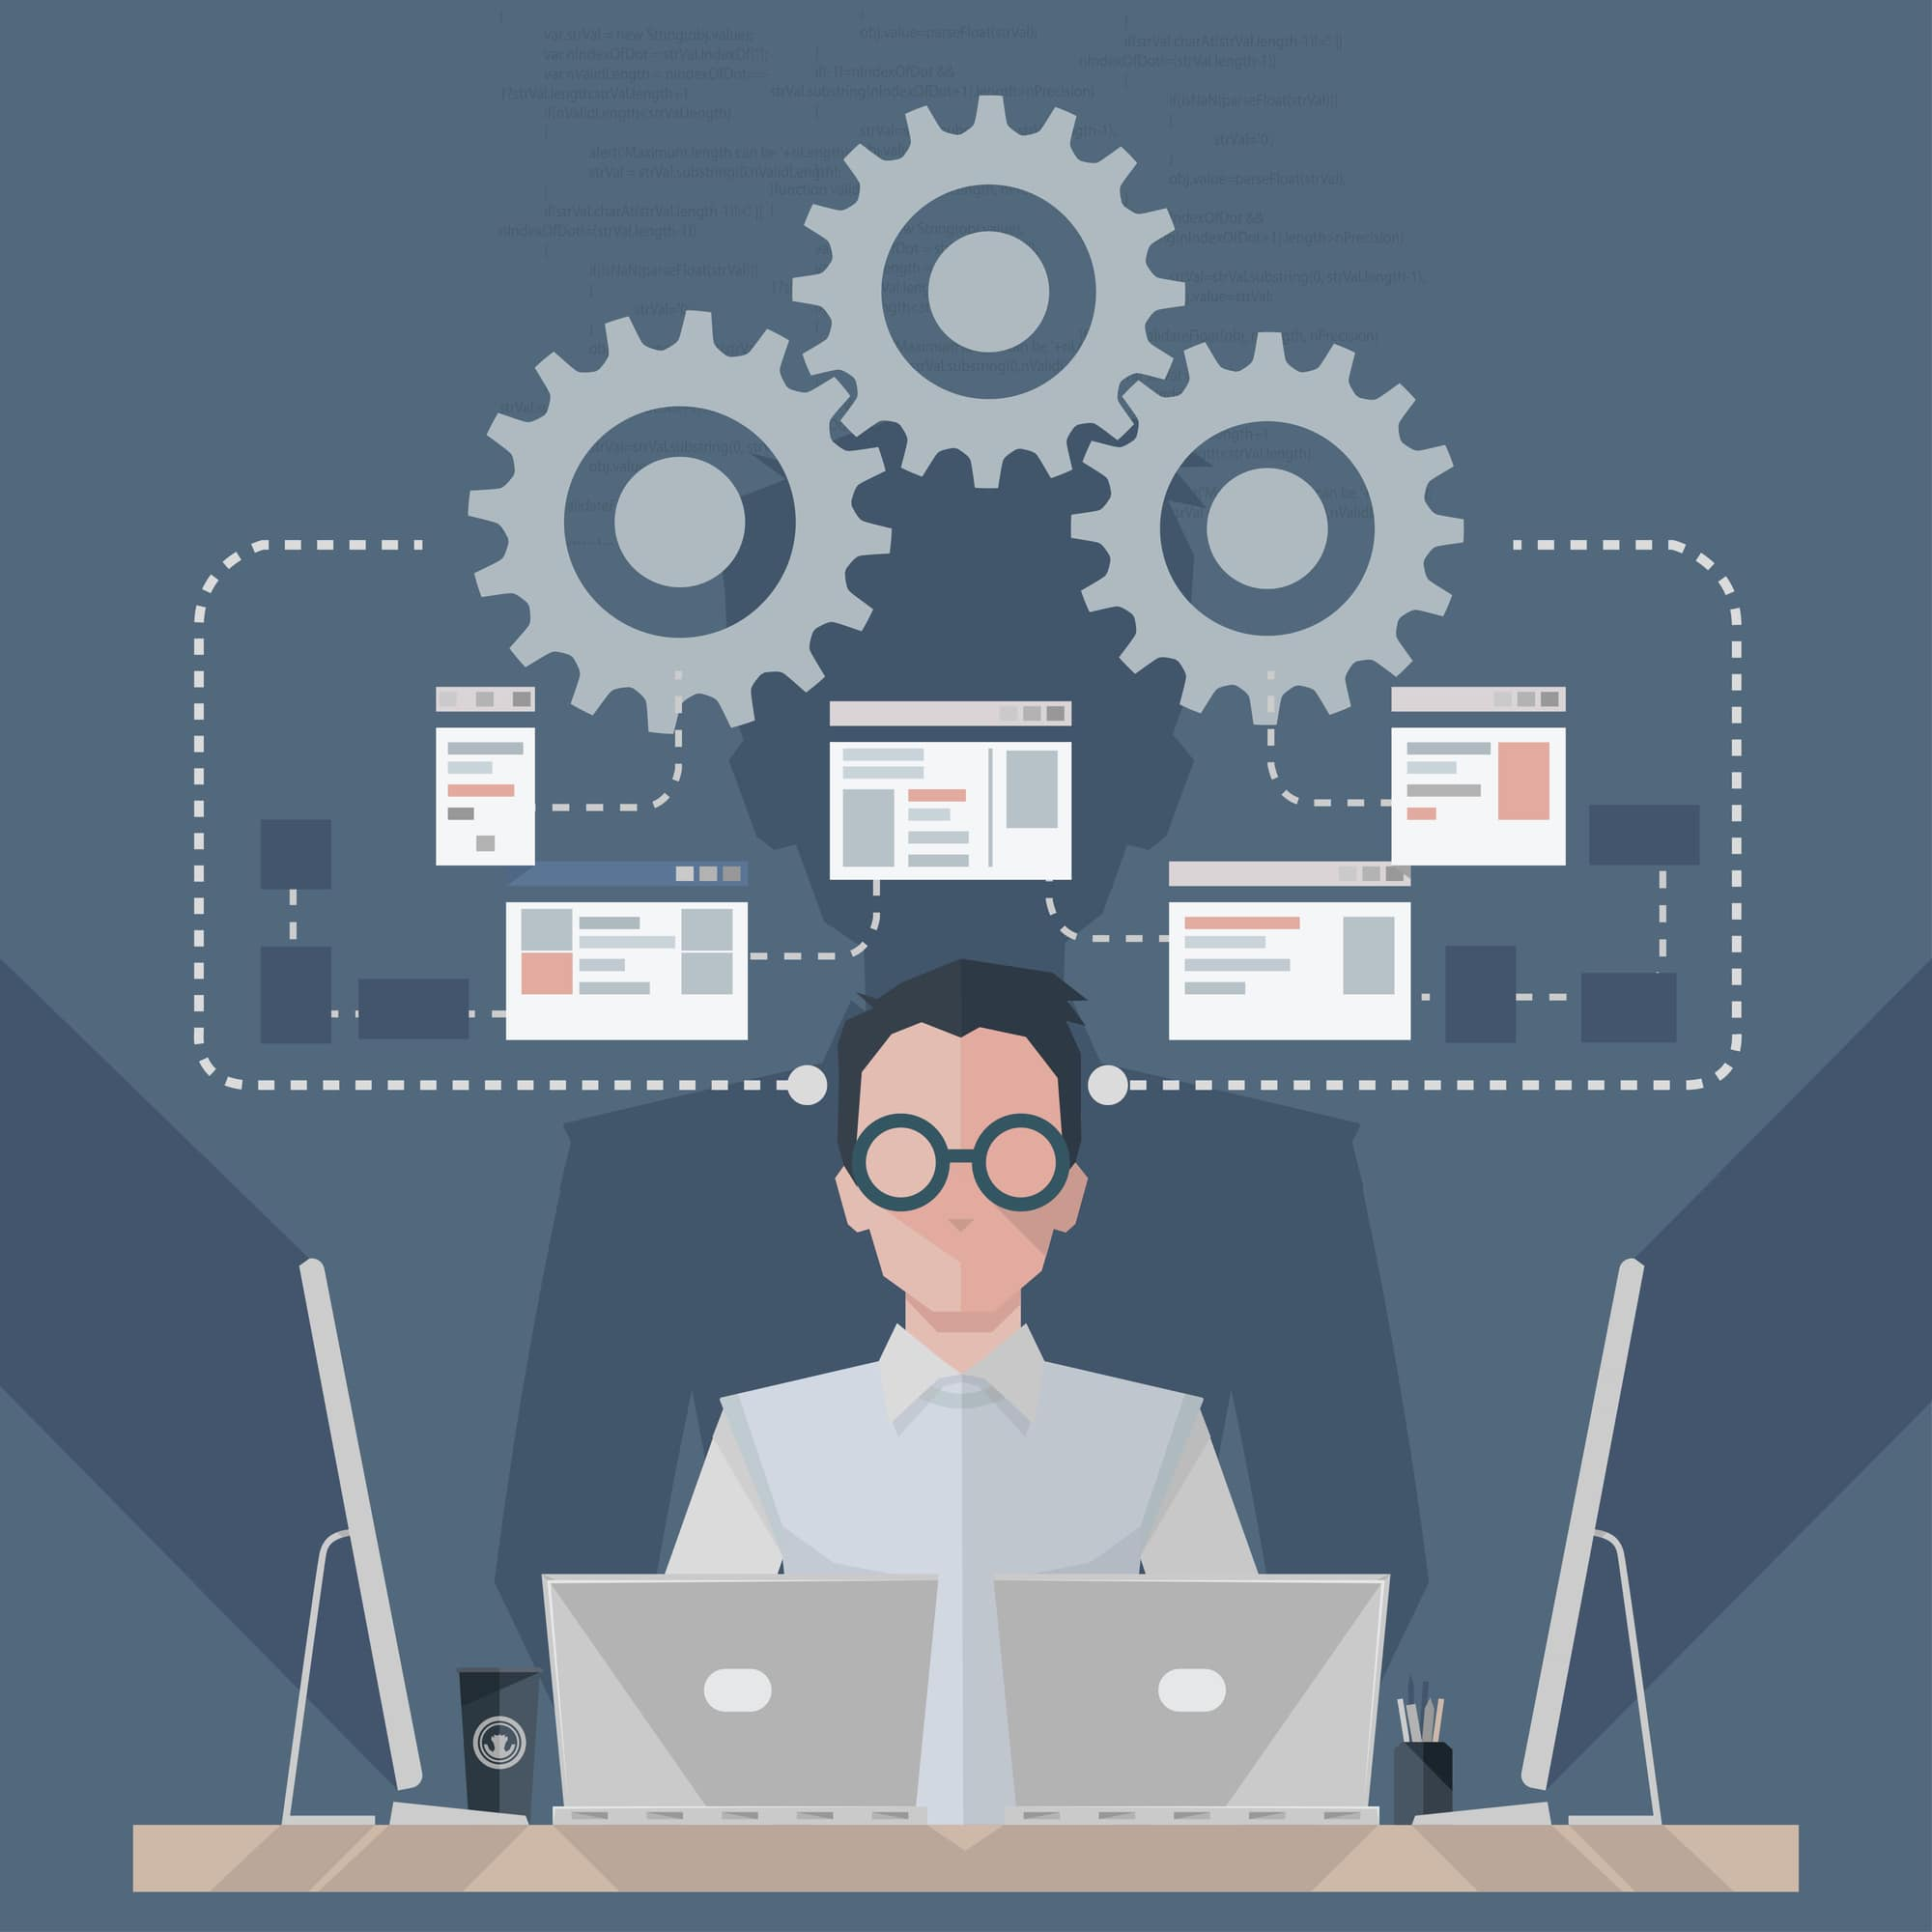 What type of work does a software tester do